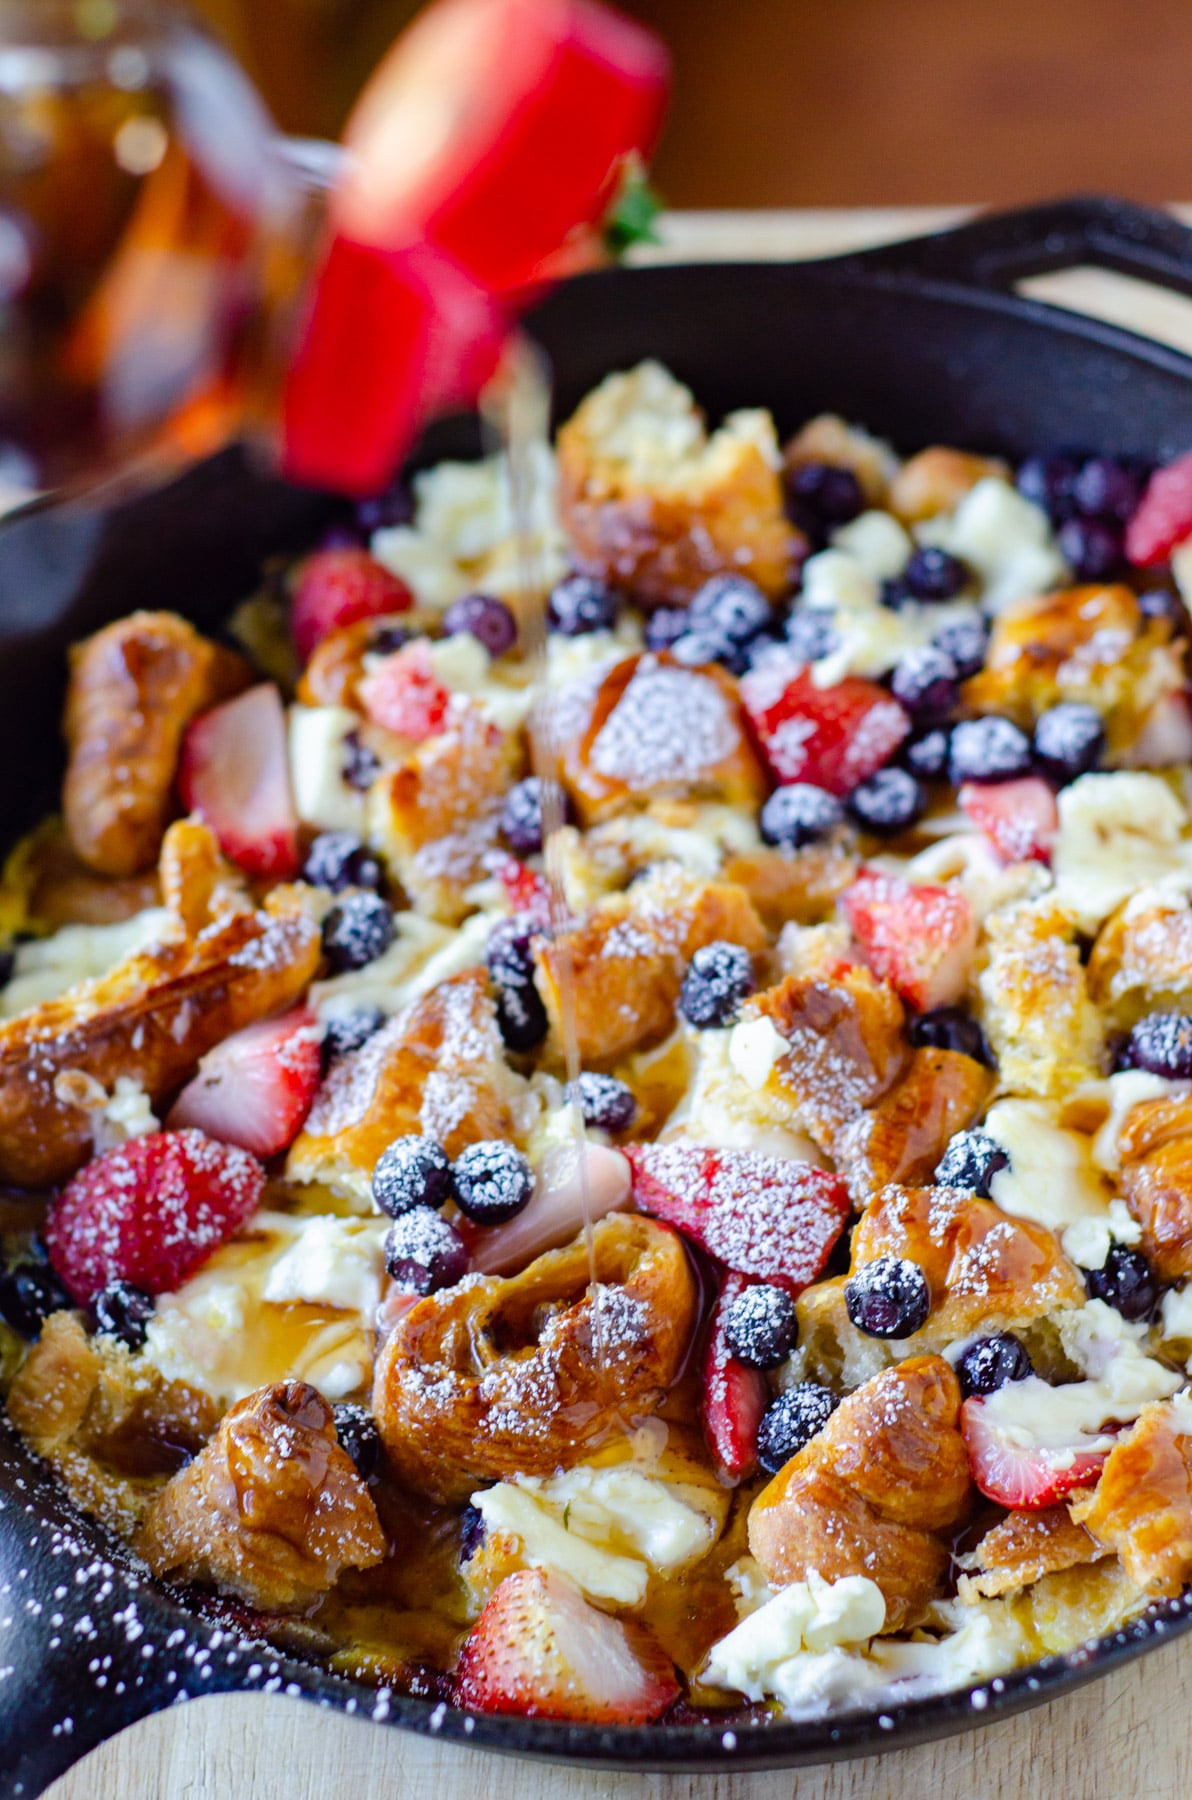 Breakfast Casserole mixed with berries and croissants in a cast iron skillet with maple syrup being poured over.